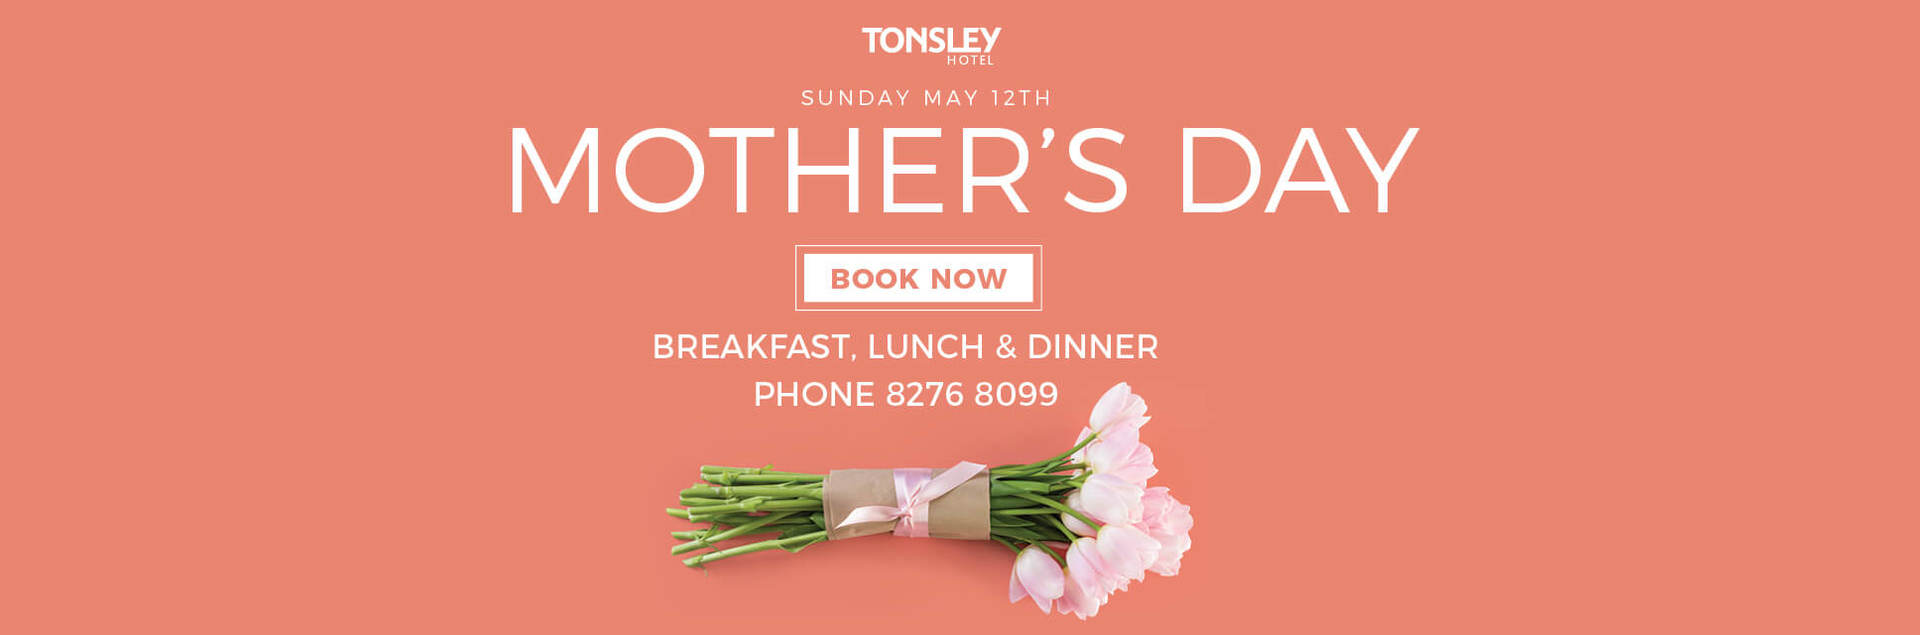 The-Tonsley-Hotel-Restaurant-Adelaide-Accommodation-Function-Rooms-Music-Mothers-Day-slider.jpg